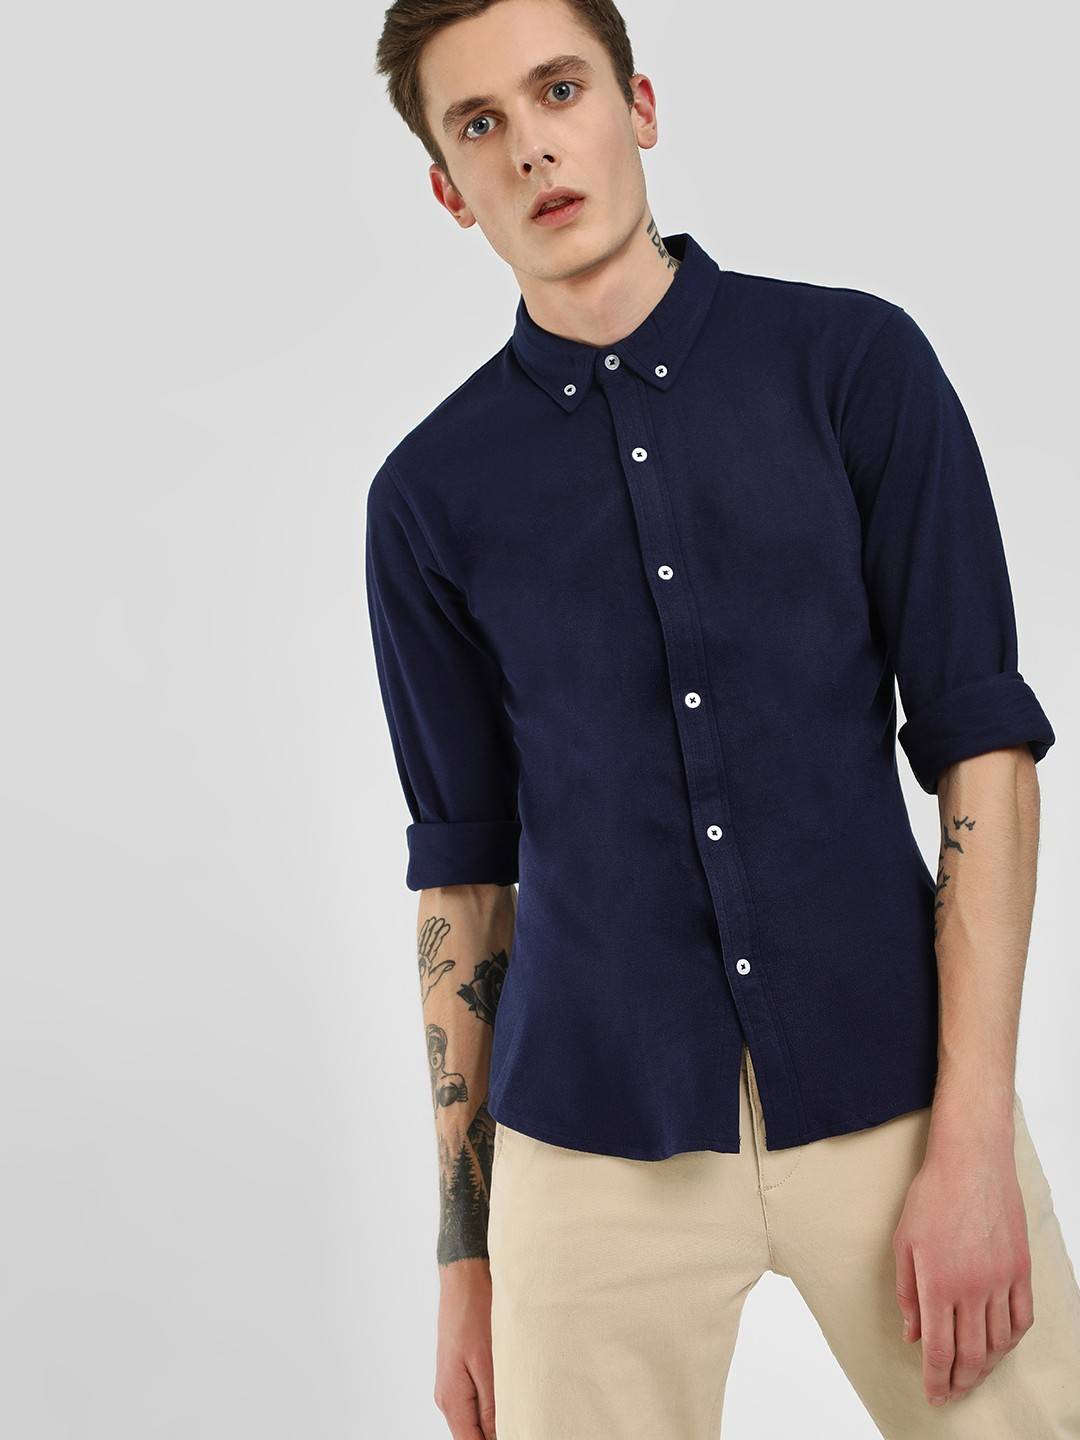 Garcon Navy Contrast Button Down Knitted Shirt 1